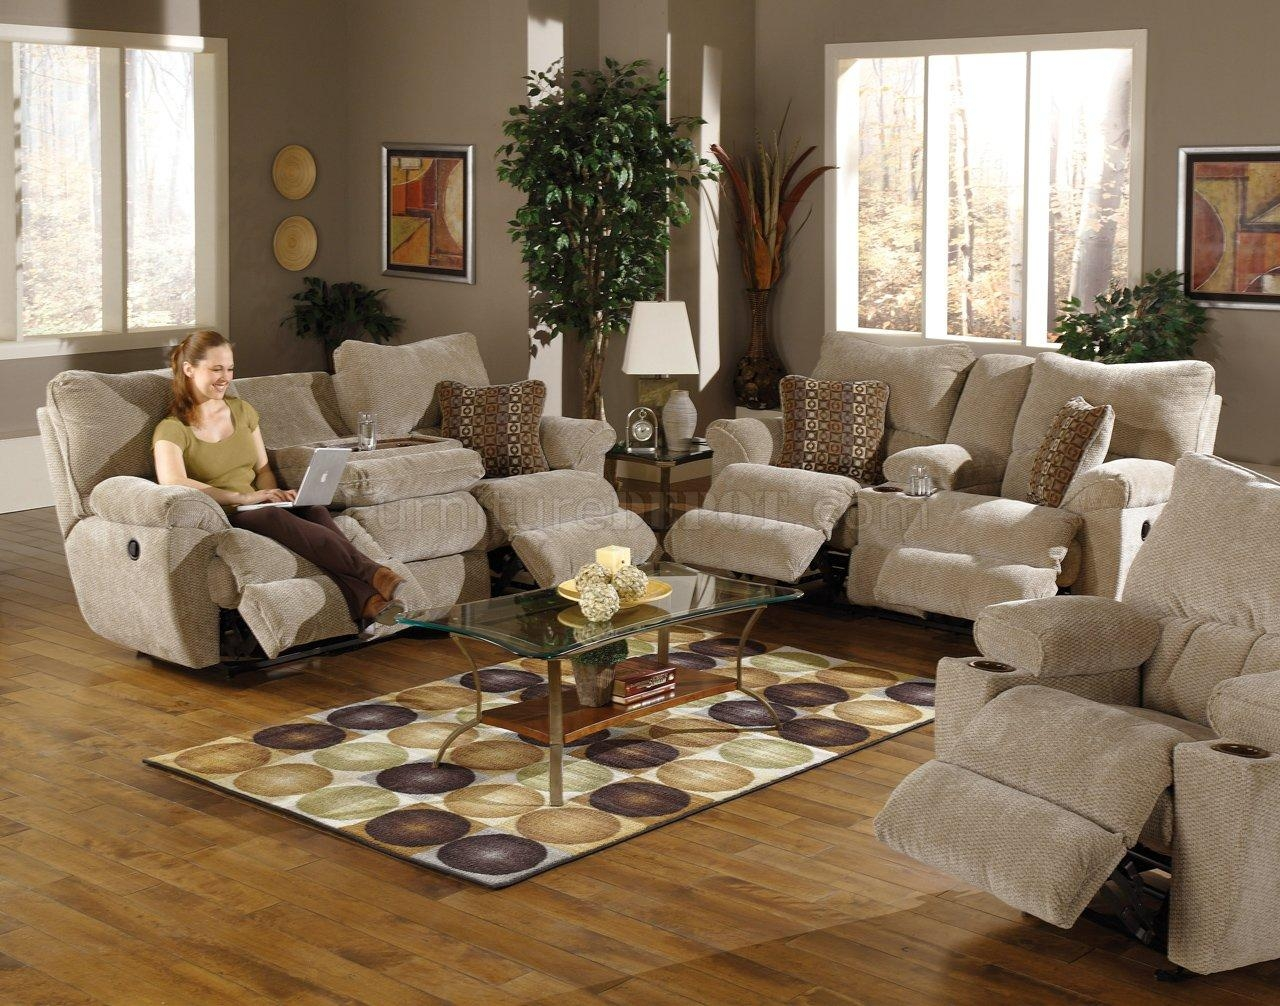 Chenille Sofas And Loveseats | Tehranmix Decoration Throughout Sofas And Loveseats (Image 2 of 20)